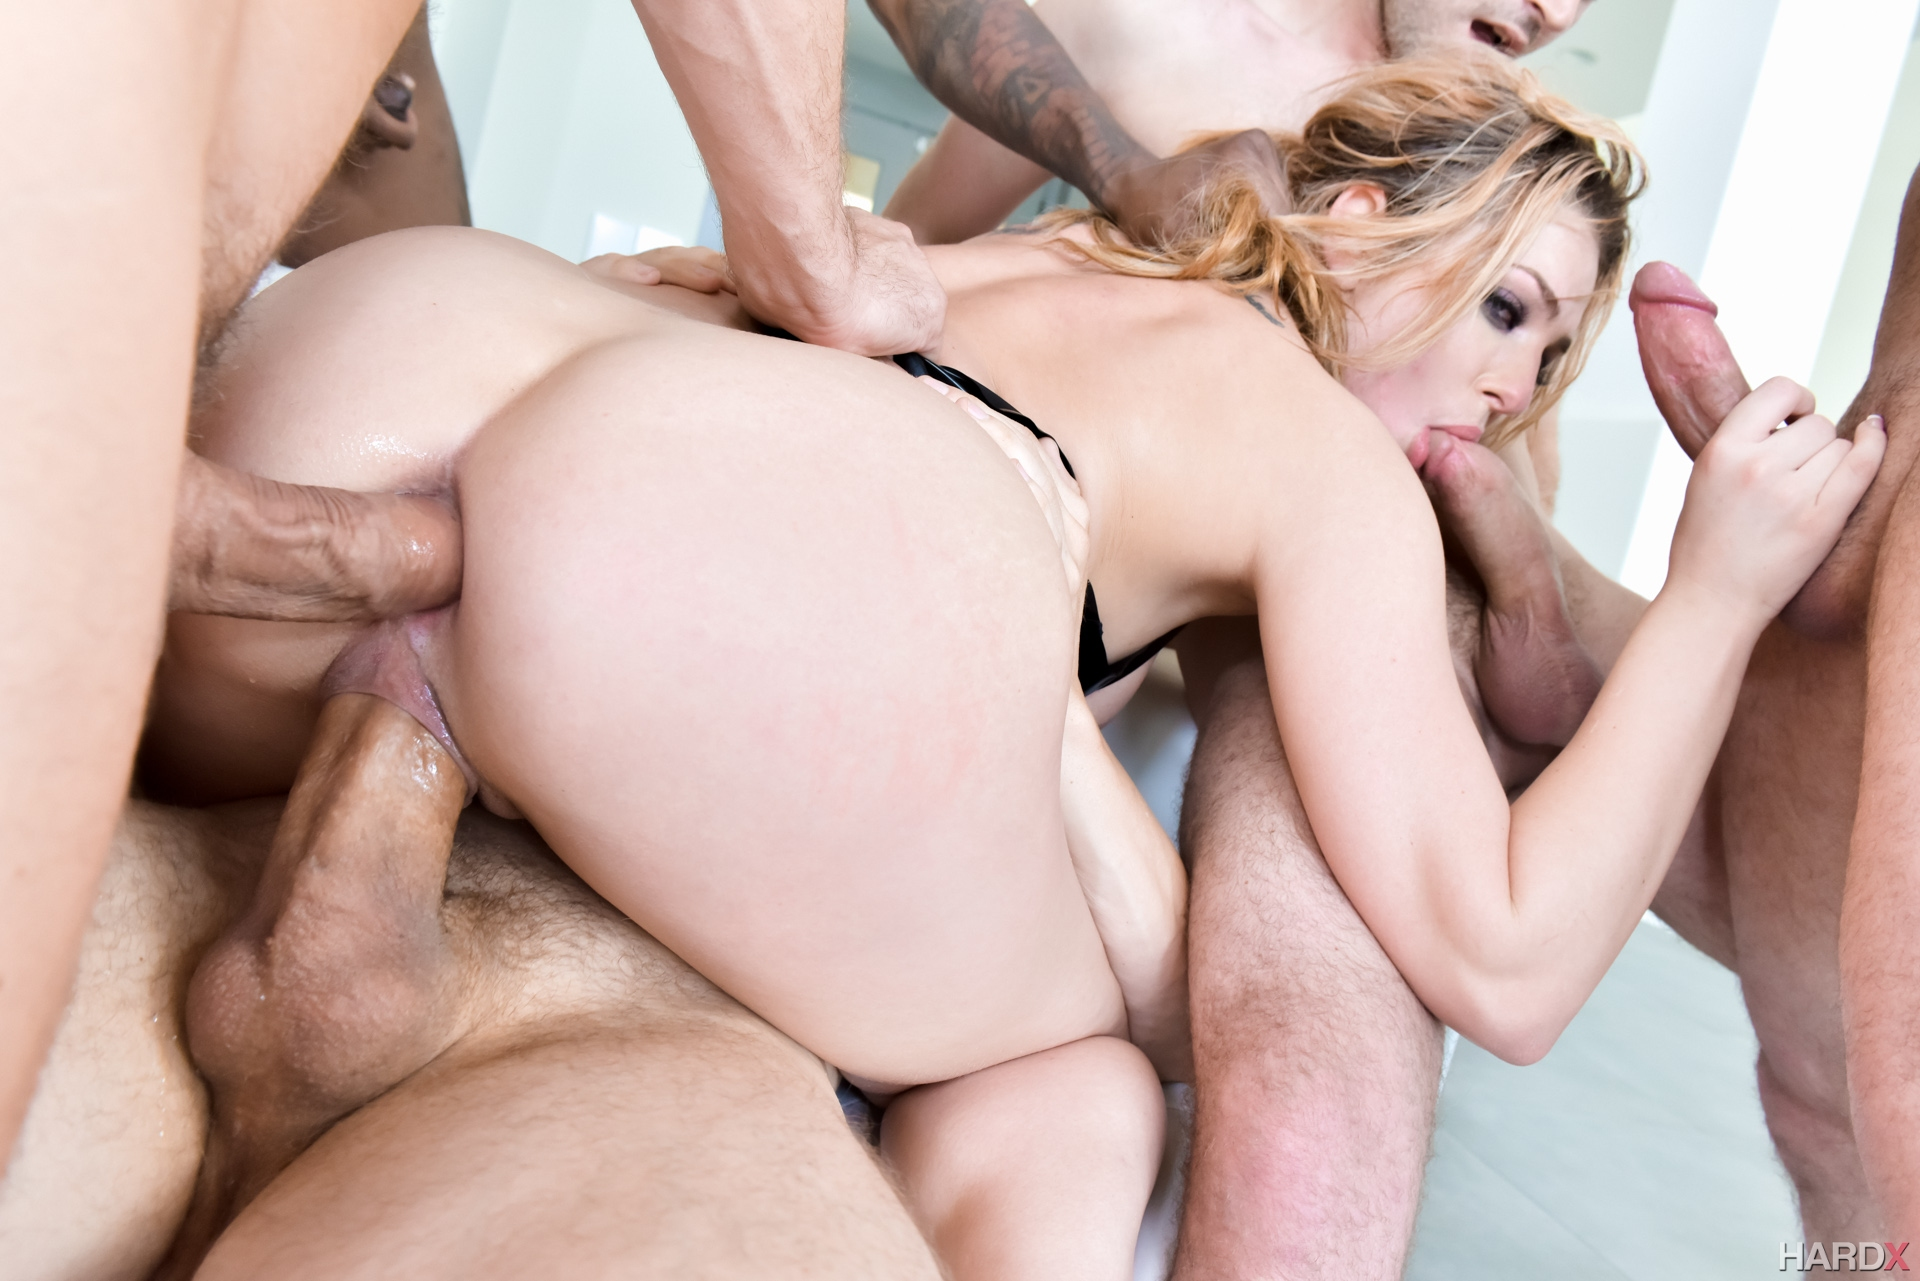 Triple penetration in ass